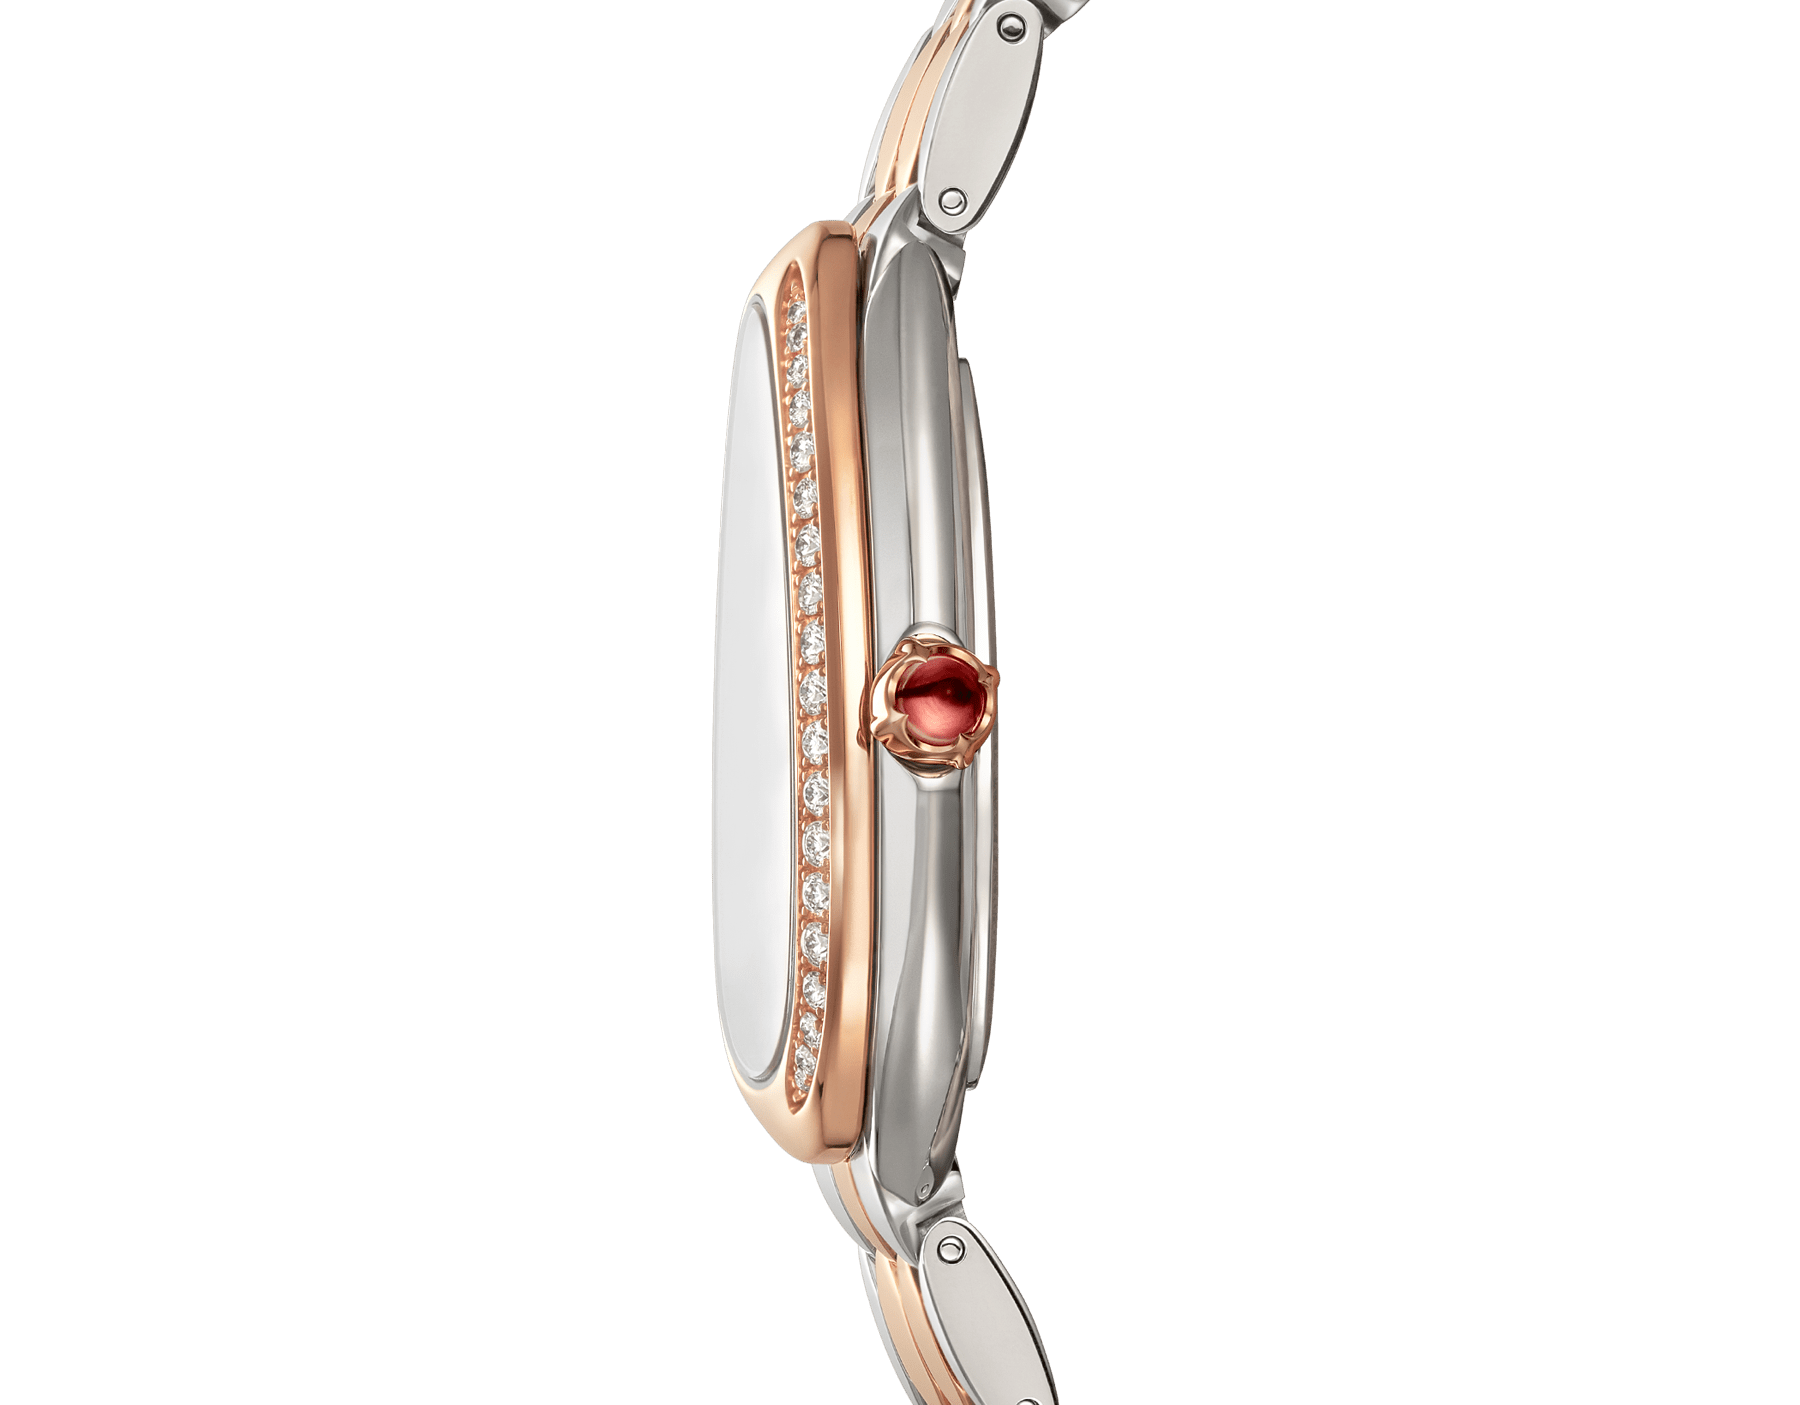 Serpenti Seduttori watch with stainless steel case, 18 kt rose gold bezel set with diamonds, white dial, and 18 kt rose gold and stainless steel bracelet 103274 image 3